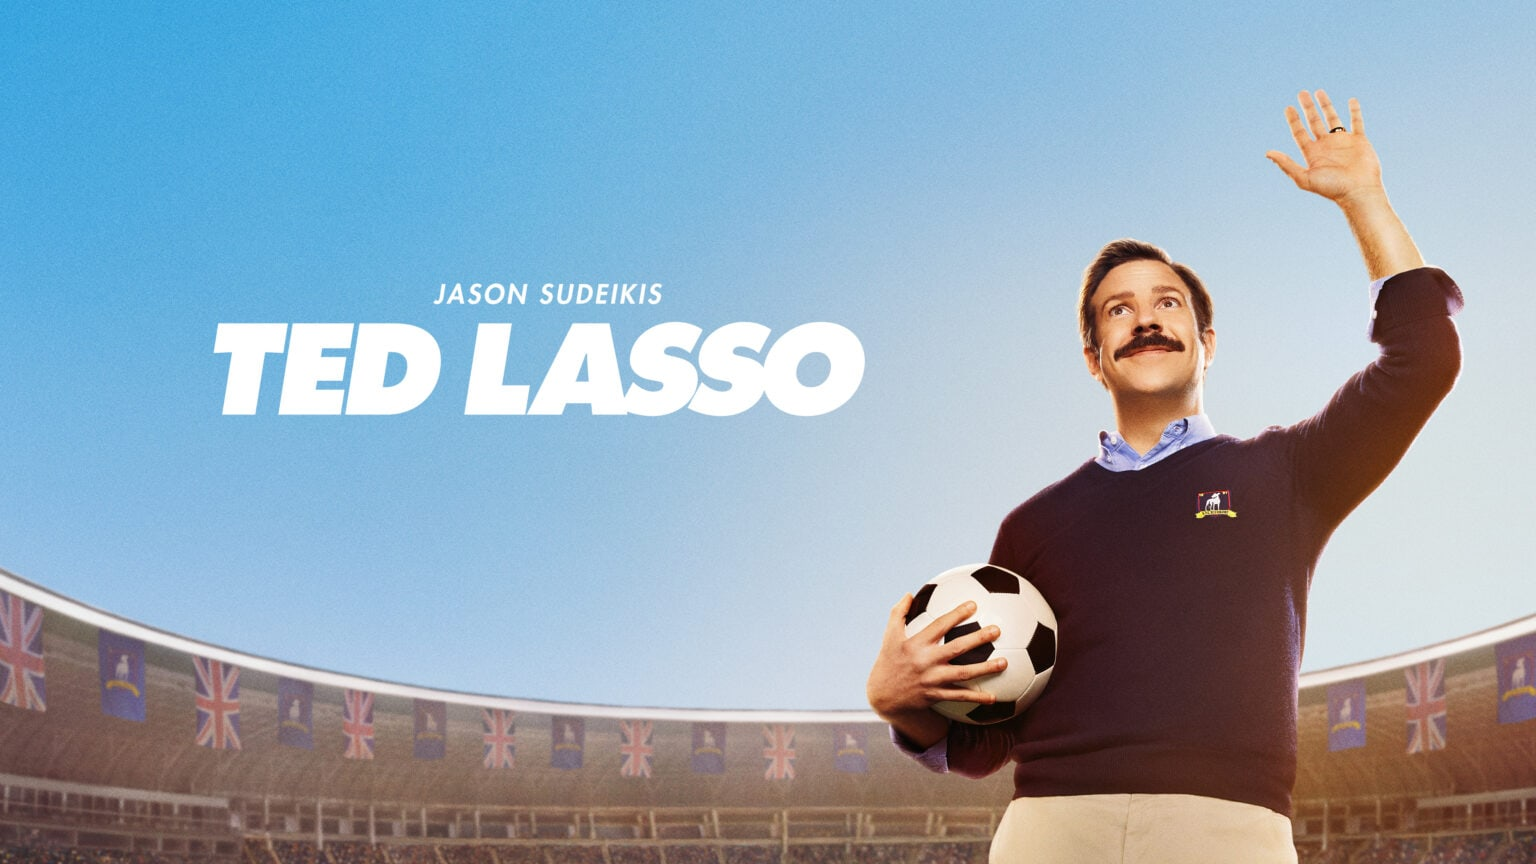 Jason Sudeikis plays a clueless college football coach in the Apple TV+ comedy series